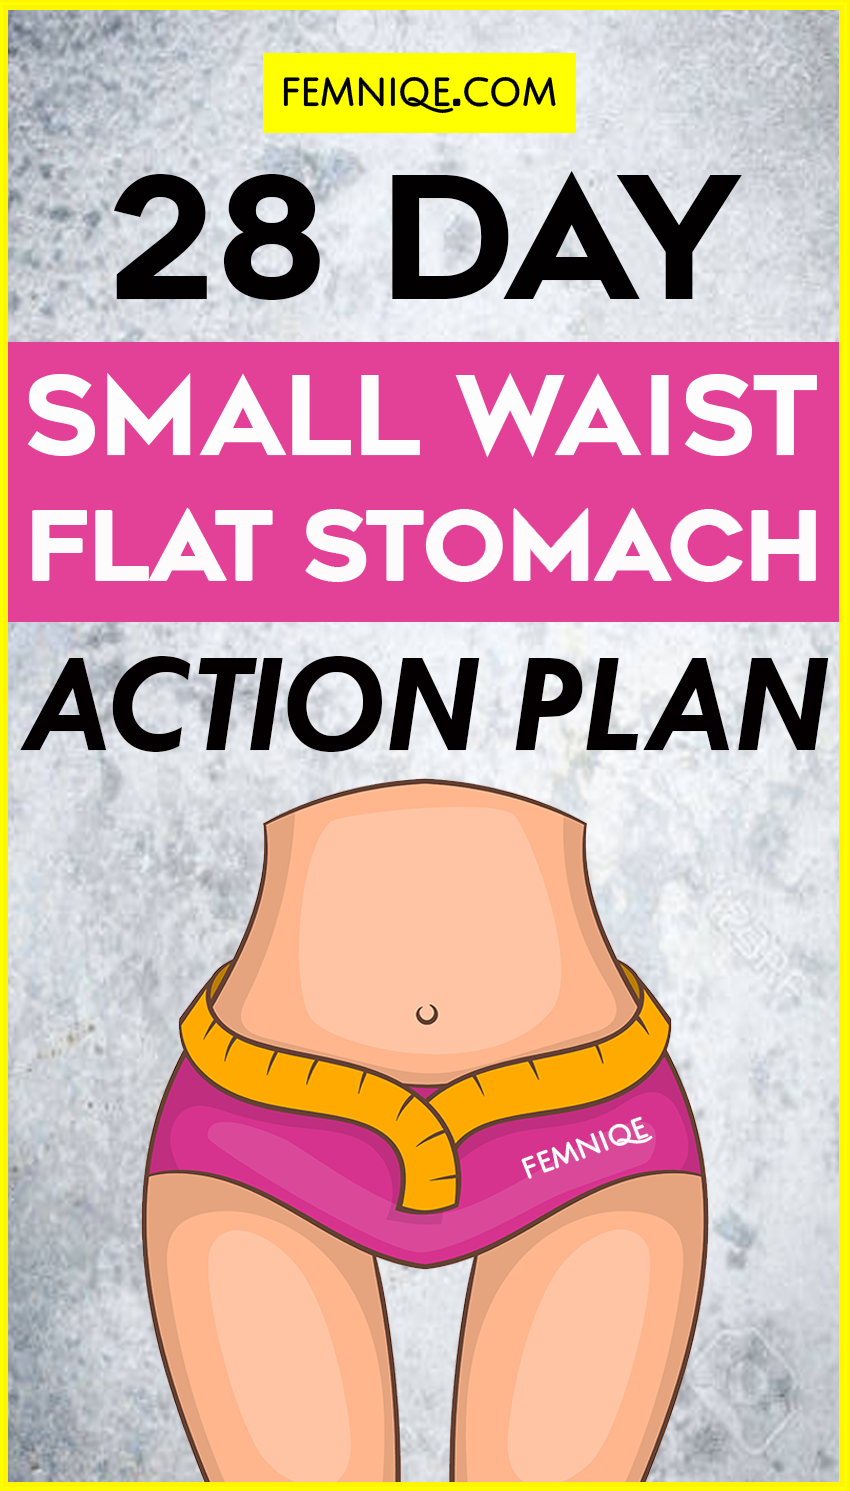 Secrets to Get Flat Stomach Revealed advise